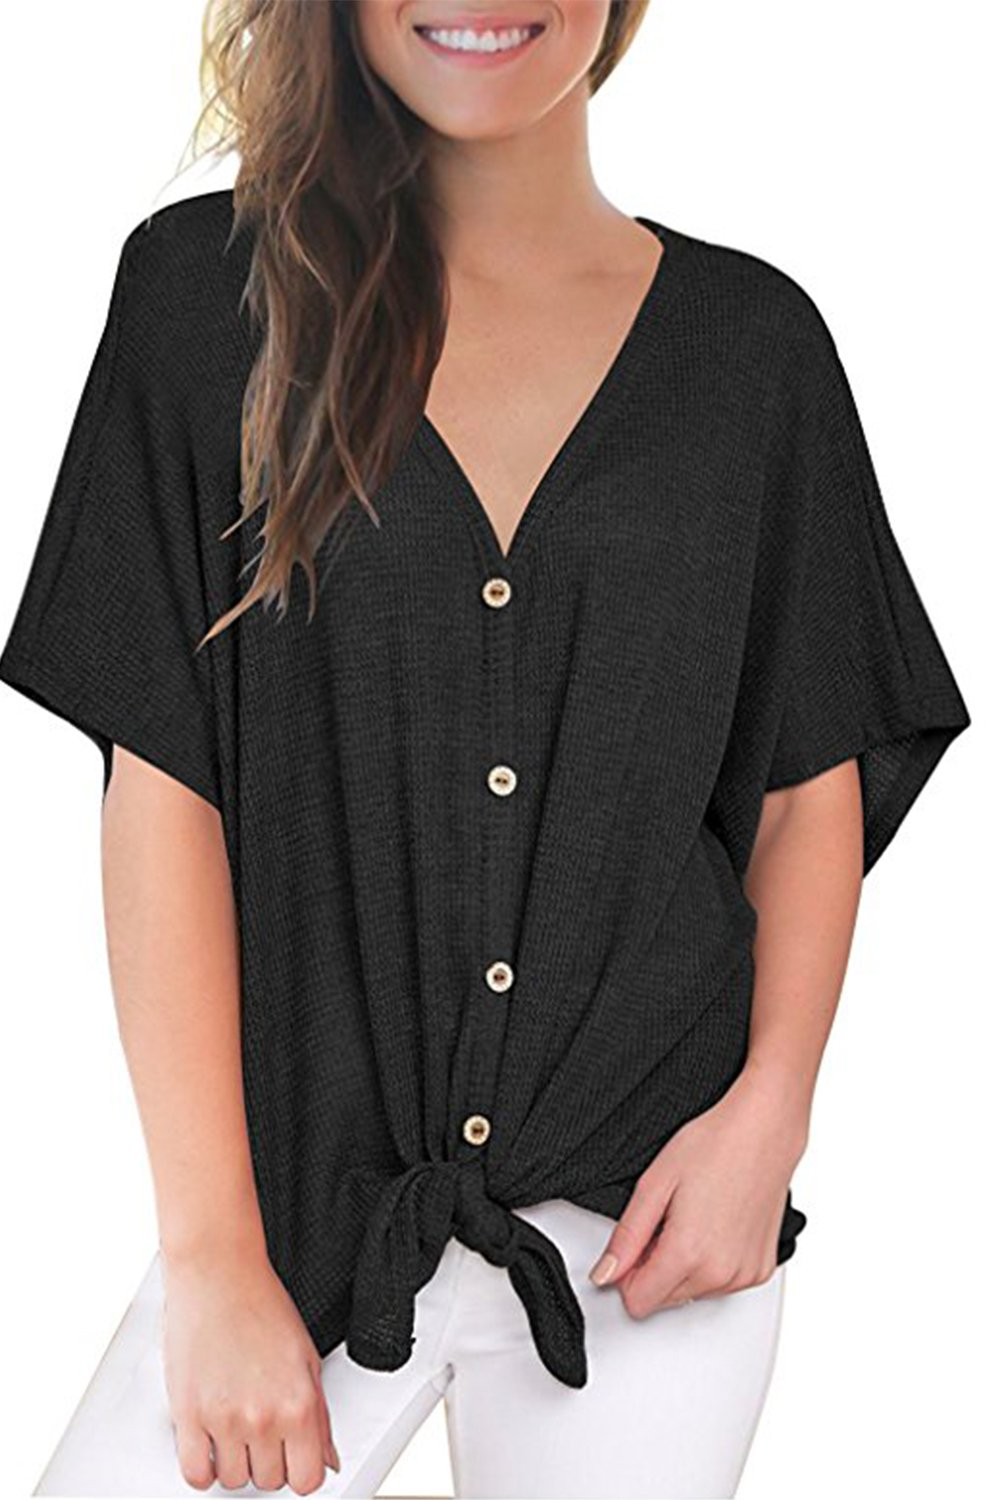 Ailixi Womens Short Sleeve Button Down Shirt Casual Loose Blouse Top Sweater With Tie Knot Front